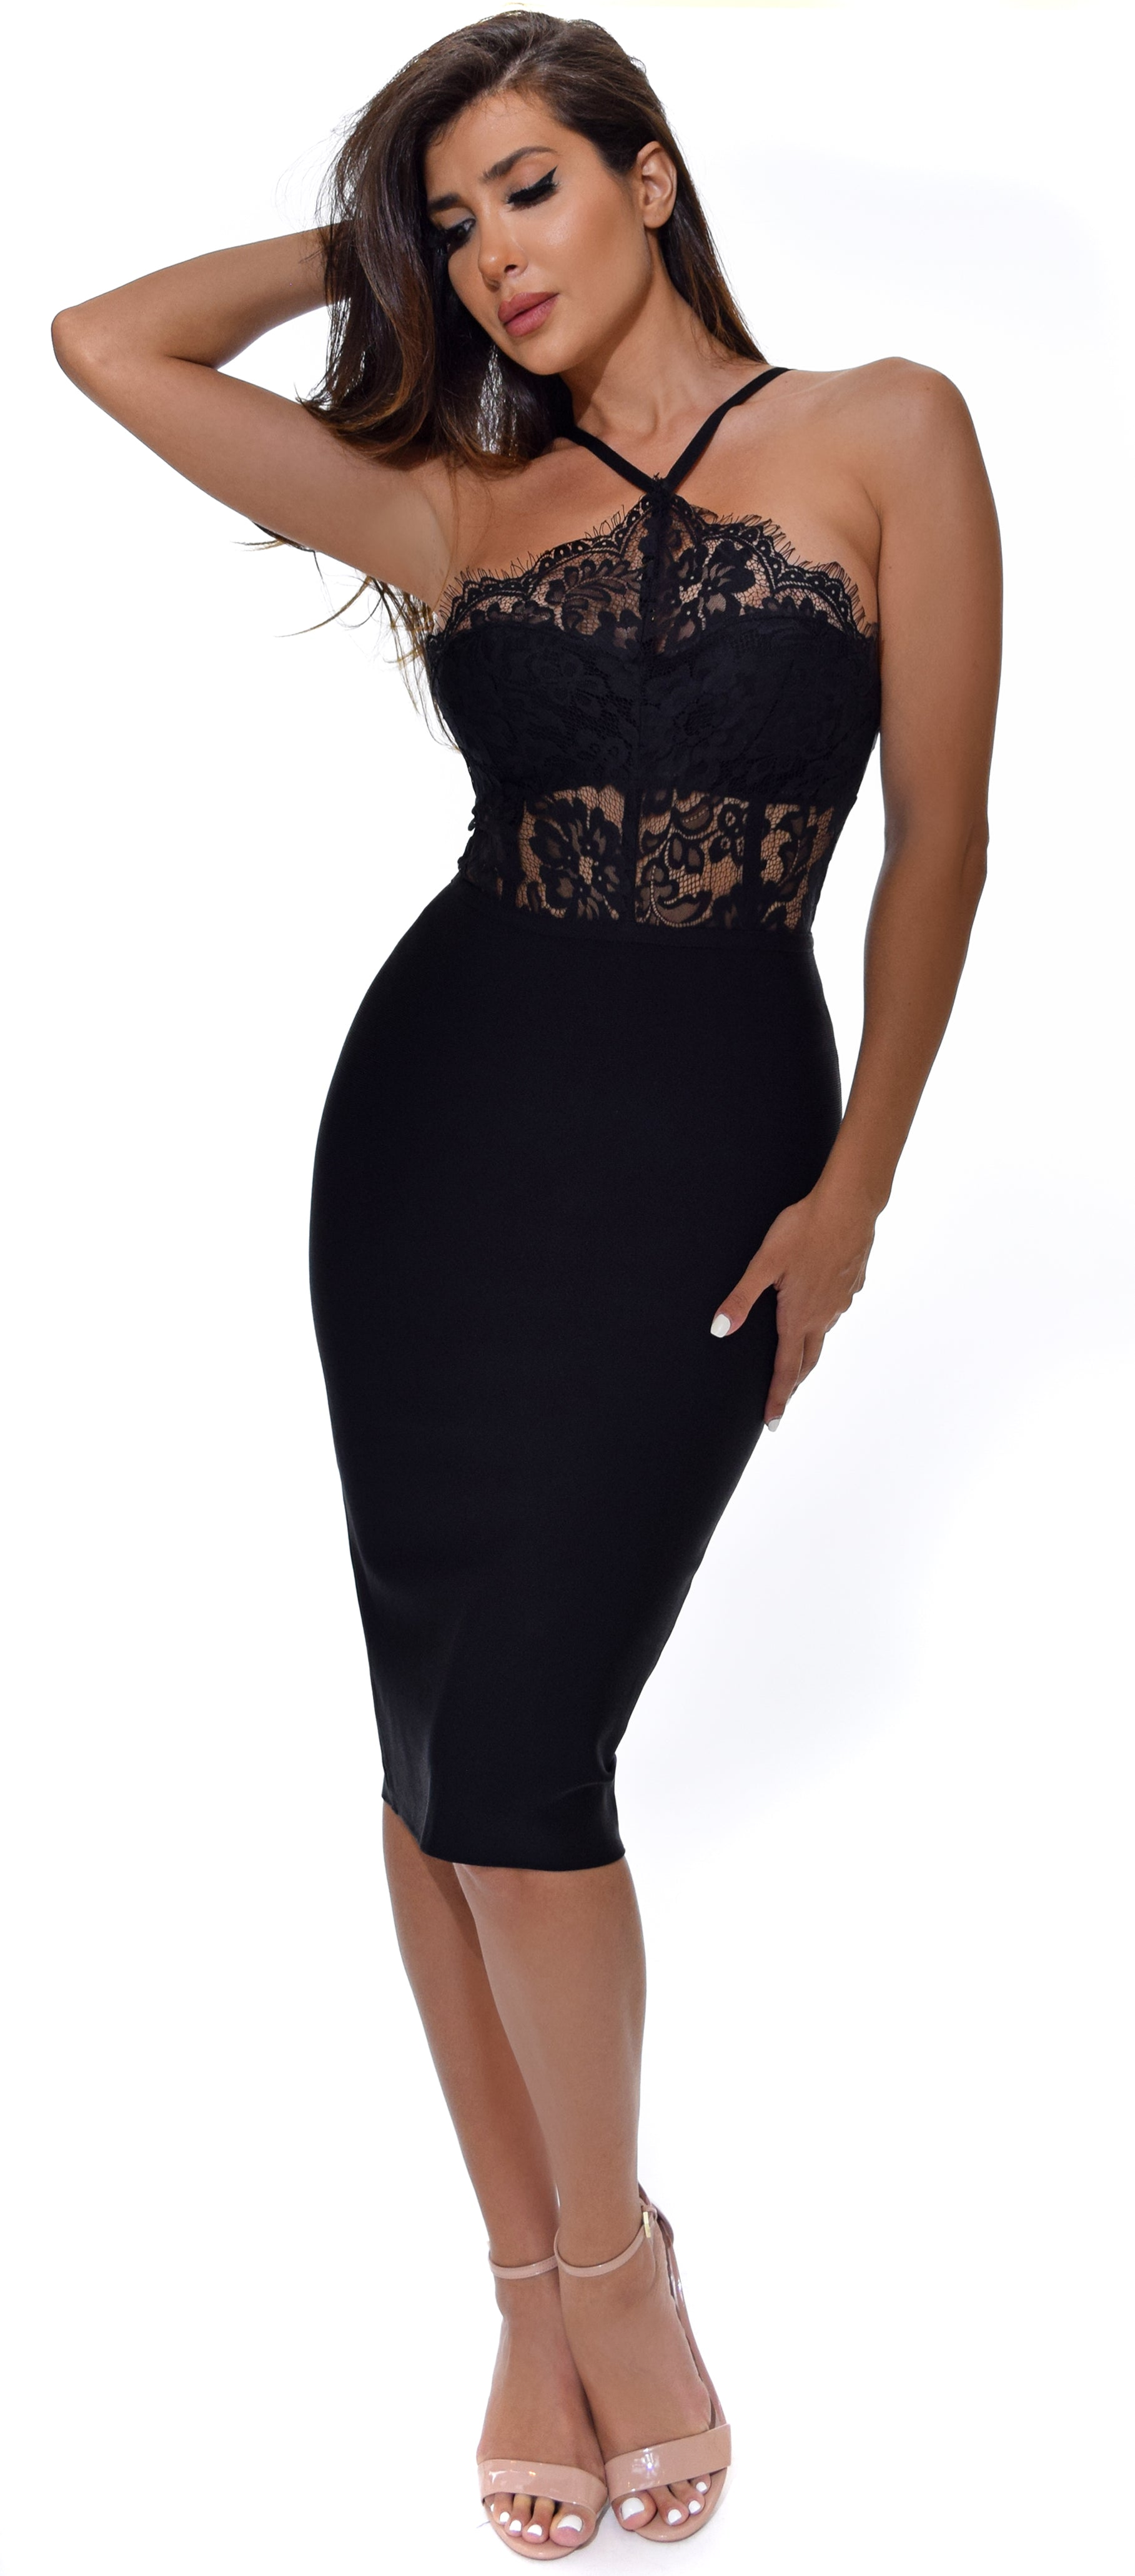 Jolanda Black Lace Bandage Dress